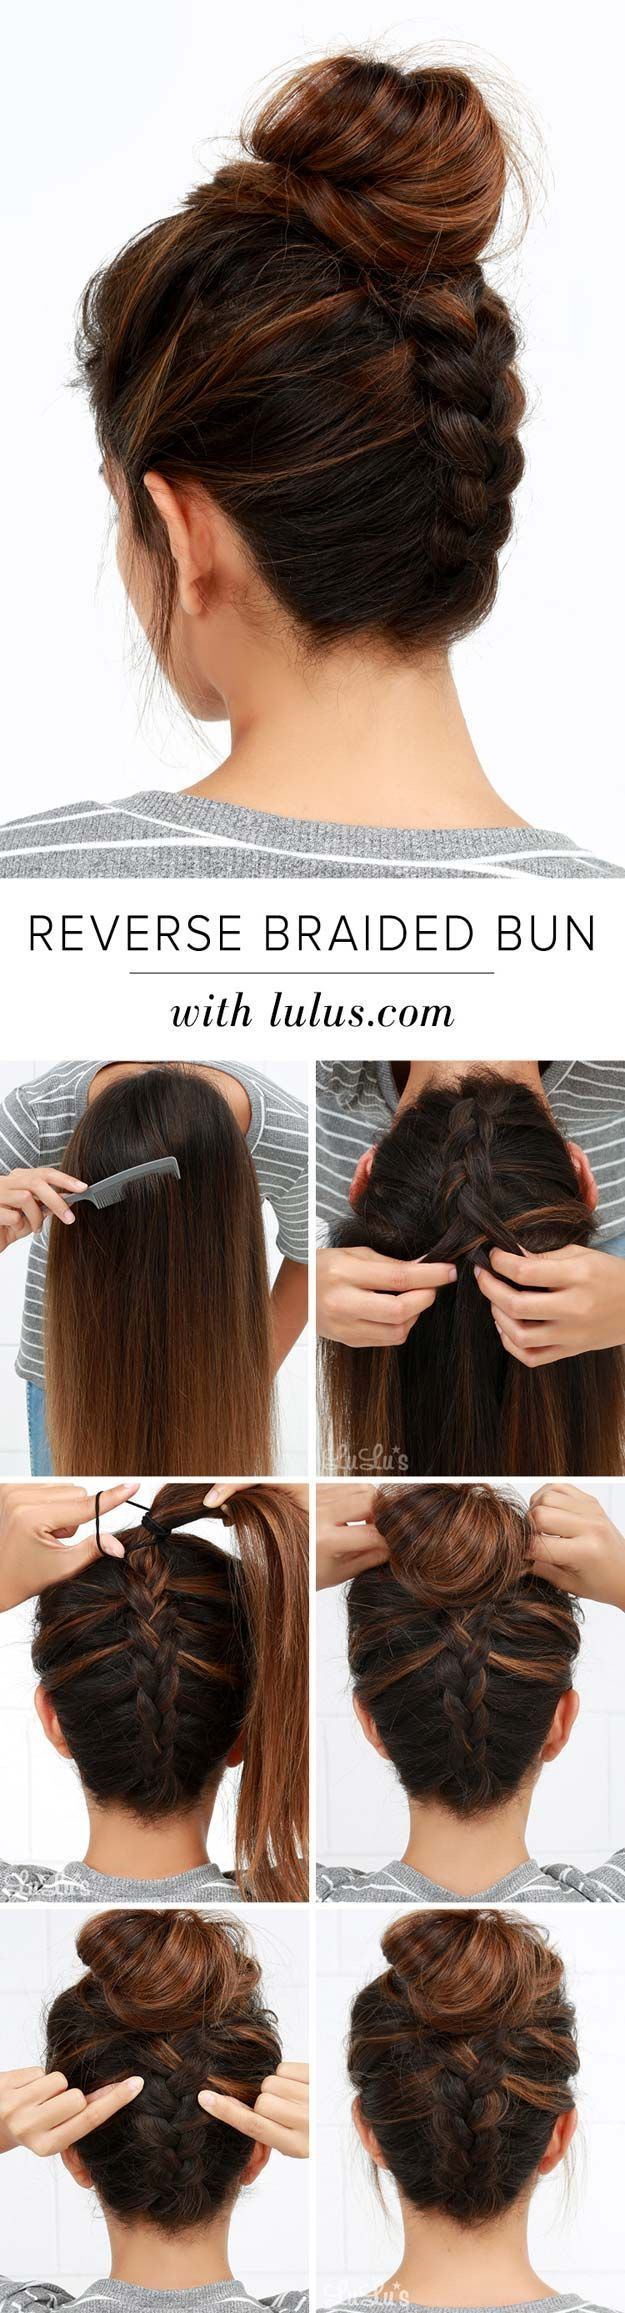 Cool and Easy DIY Hairstyles - Reversed Braided Bun - Quick and Easy Ideas for Back to School Styles for Medium, Short and Long Hair - Fun Tips and Best Step by Step Tutorials for Teens, Prom, Weddings, Special Occasions and Work. Up dos, Braids, Top Knot Nail Design, Nail Art, Nail Salon, Irvine, Newport Beach